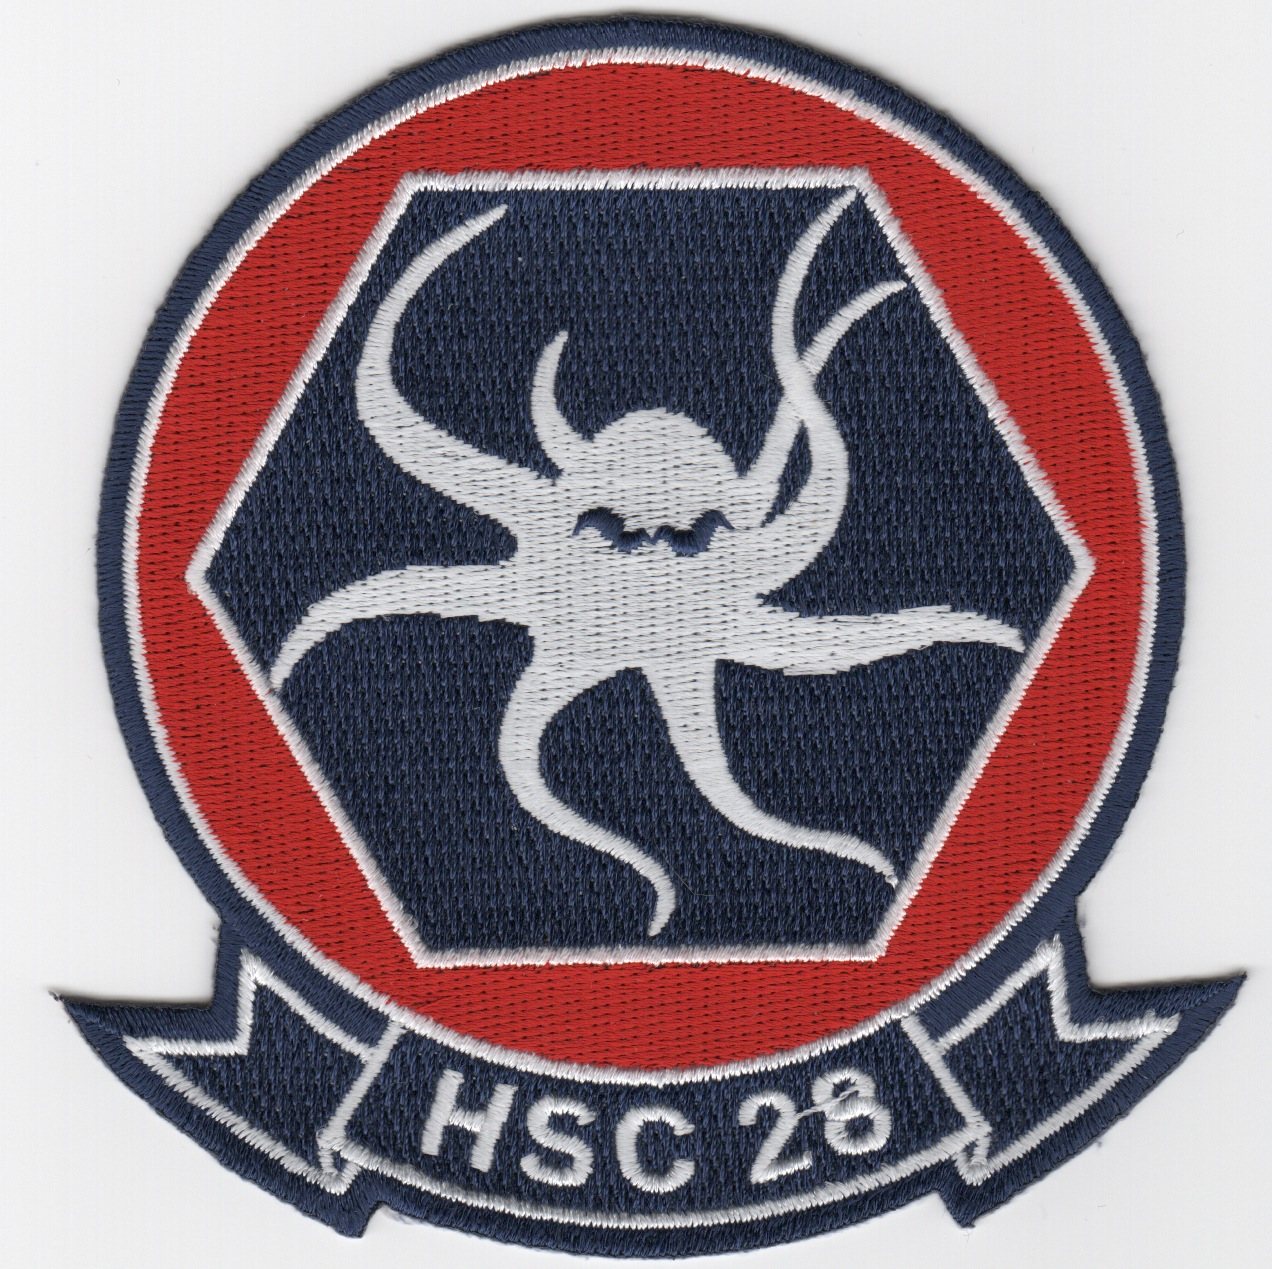 HSC-28 Squadron (Red/Blue)